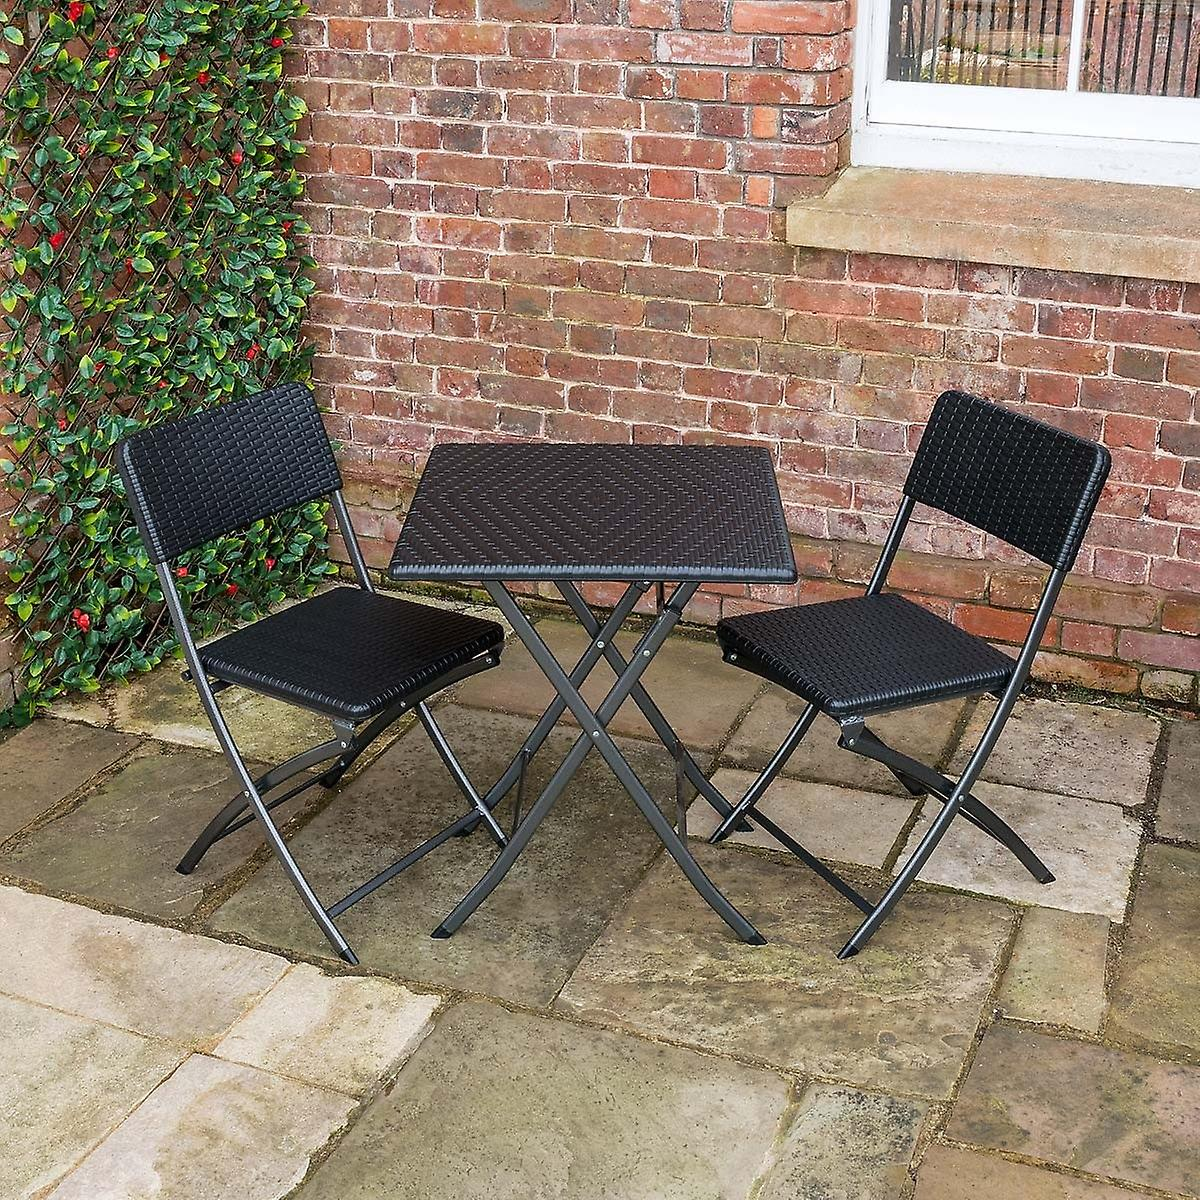 Set Rattan Patio Folding And Garden Poly Bistro 2 Outdoor Chairs Table Camping Jl1FKc